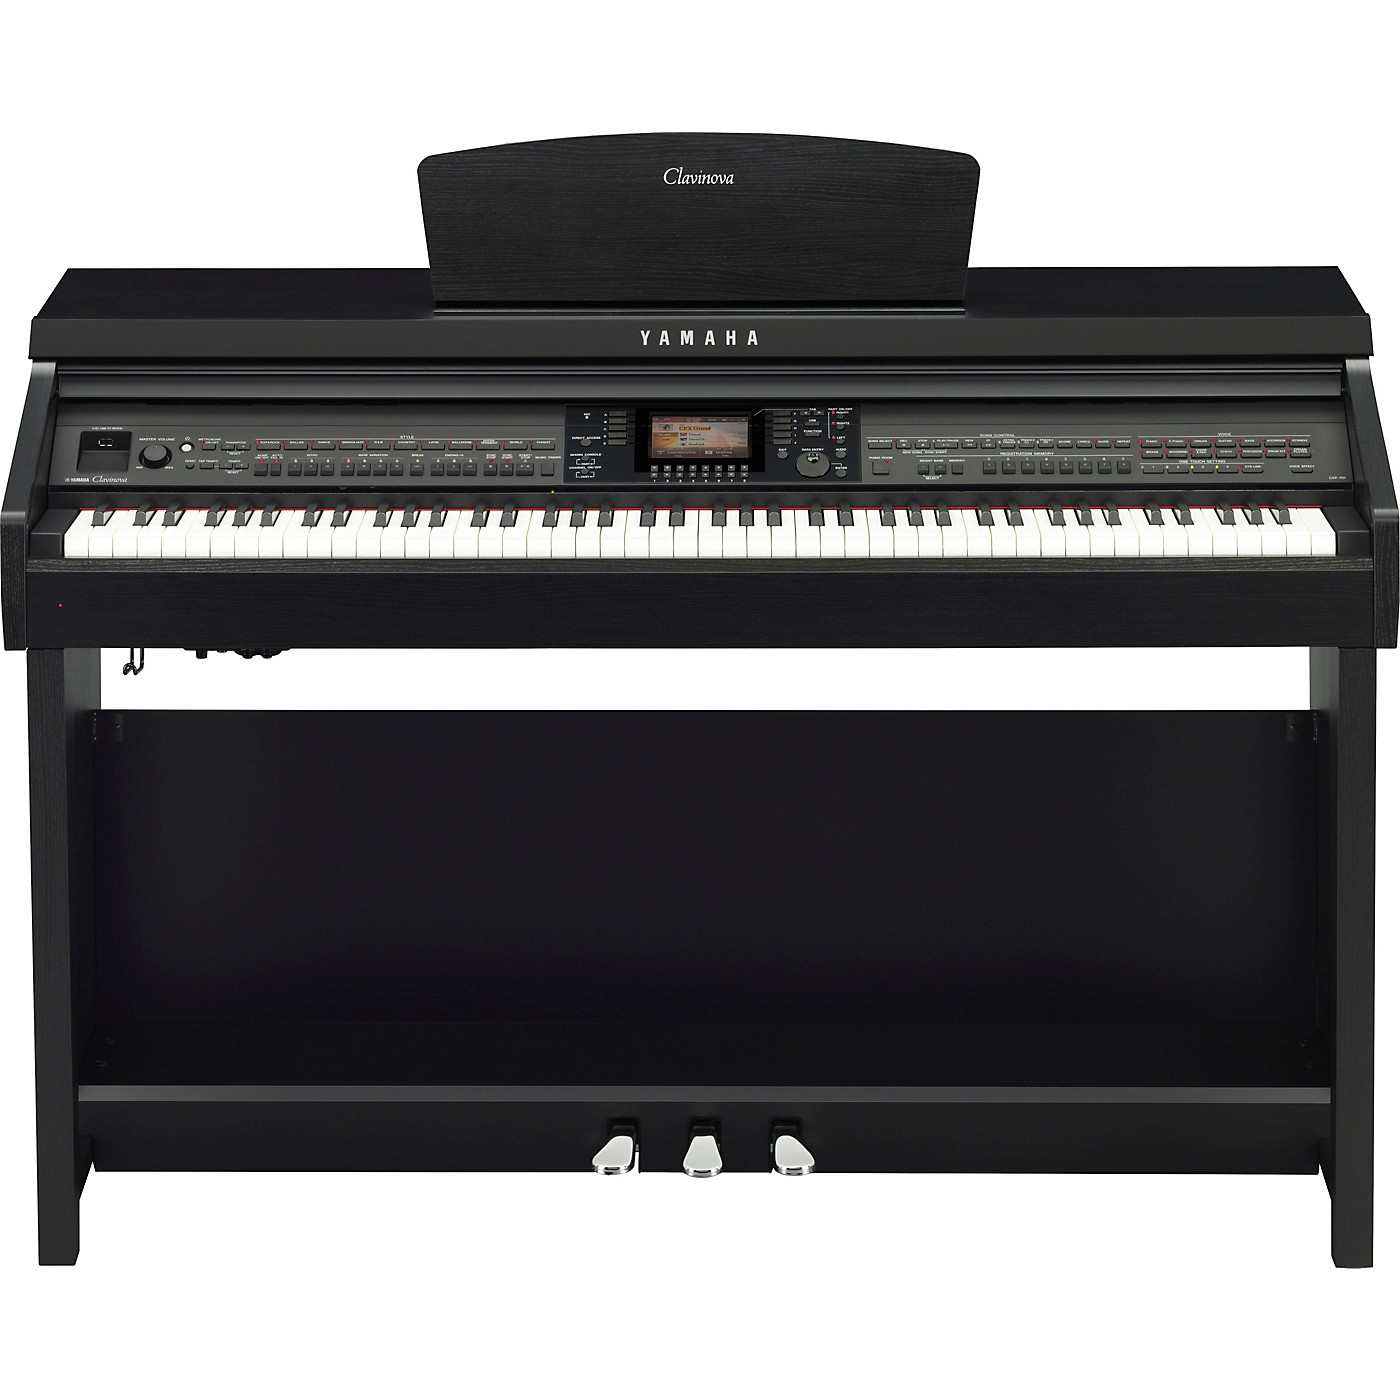 Yamaha Clavinova CVP701 Home Digital Piano thumbnail